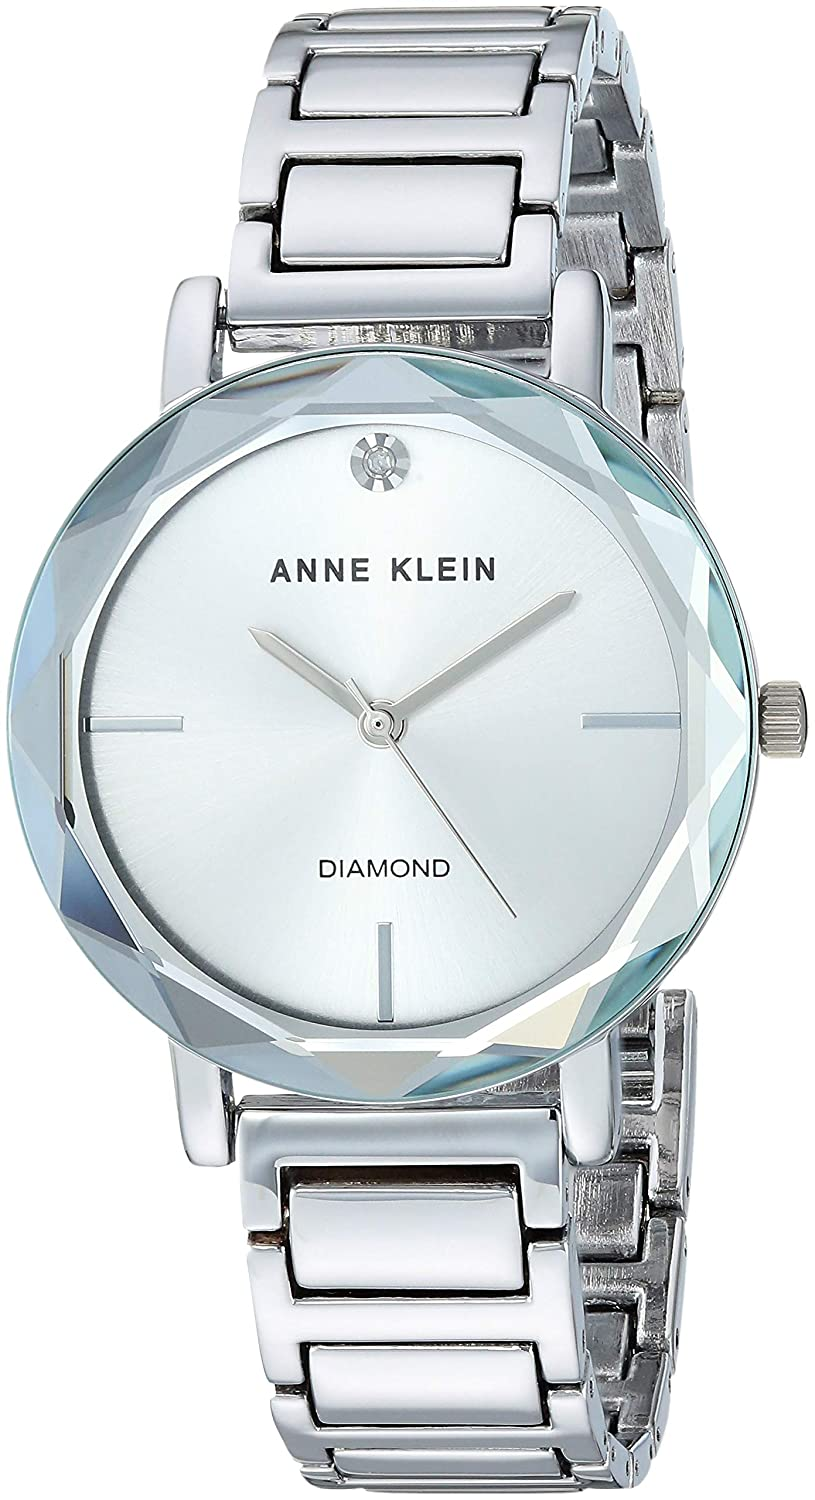 Anne Klein Women s Diamond Dial Bracelet Watch with Faceted Lens